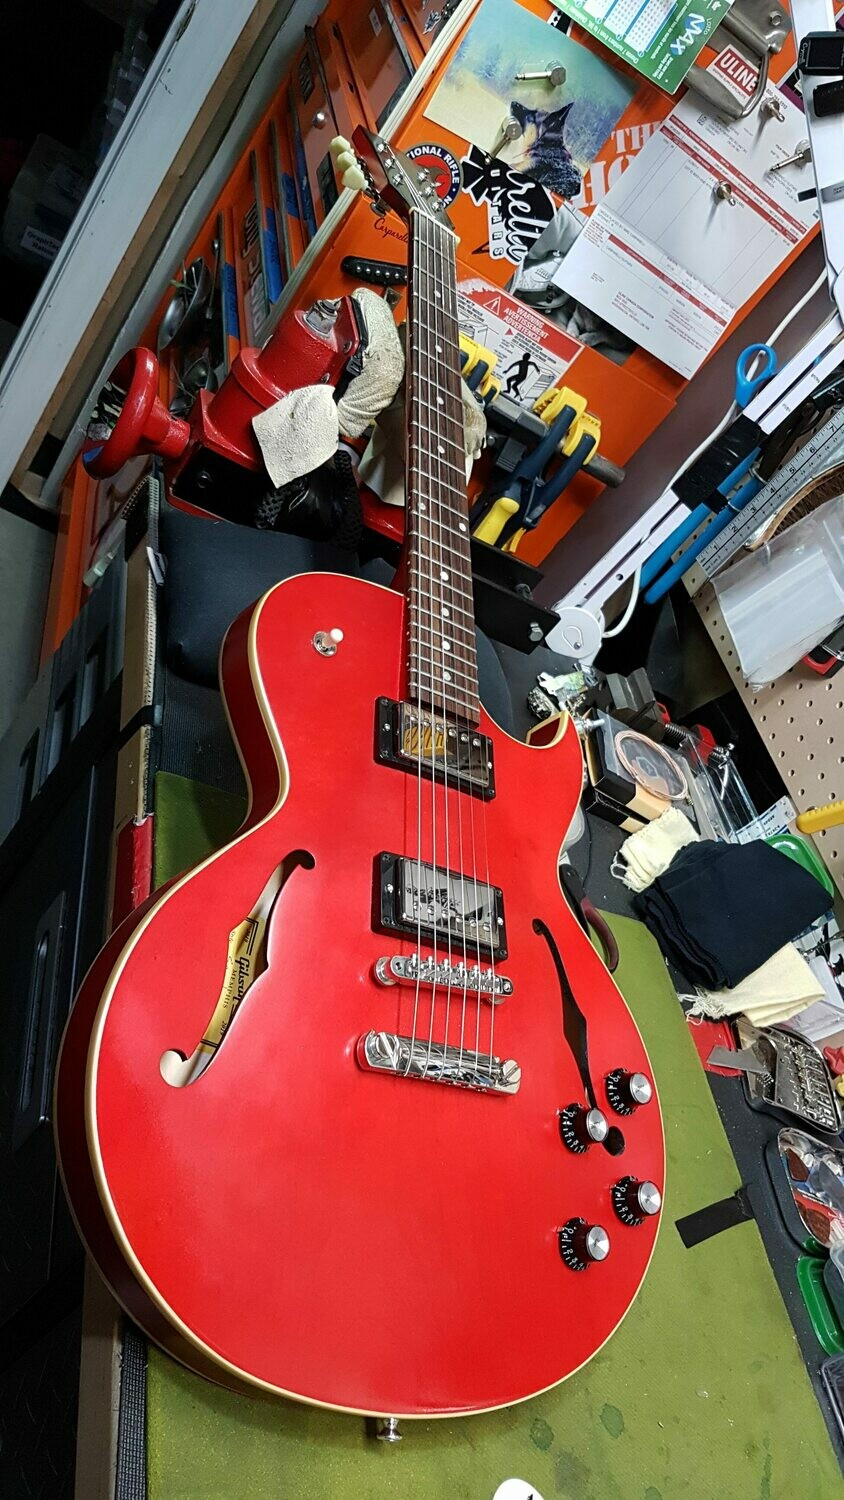 Gibson ES-235 Satin Thinline Semi-Hollow Electric Guitar Satin Cherry